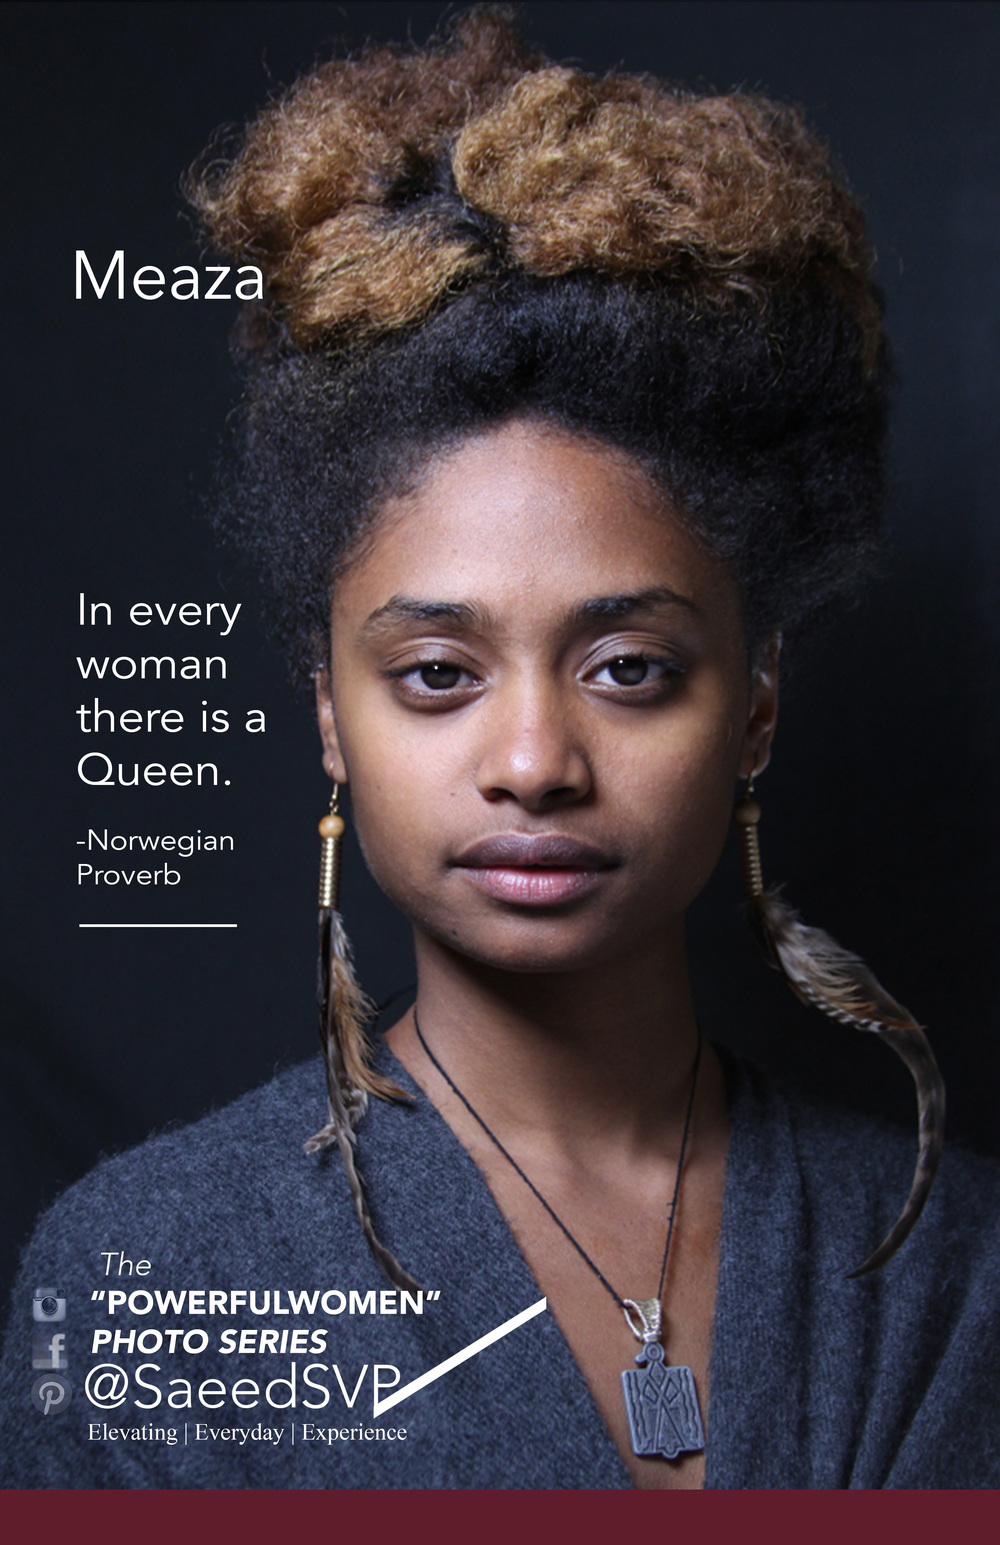 What Queens do you know? Join the conversation as we discover Powerful Women and acknowledge the ones we know.  The woman above has been acknowledged for her Queen like attributes.  Queen's are supreme by lineage and have the authority to address pressing issues.    Share this image with a woman you think is applying her authority to make the world a better place using the hashtag  #icTheQueeninU